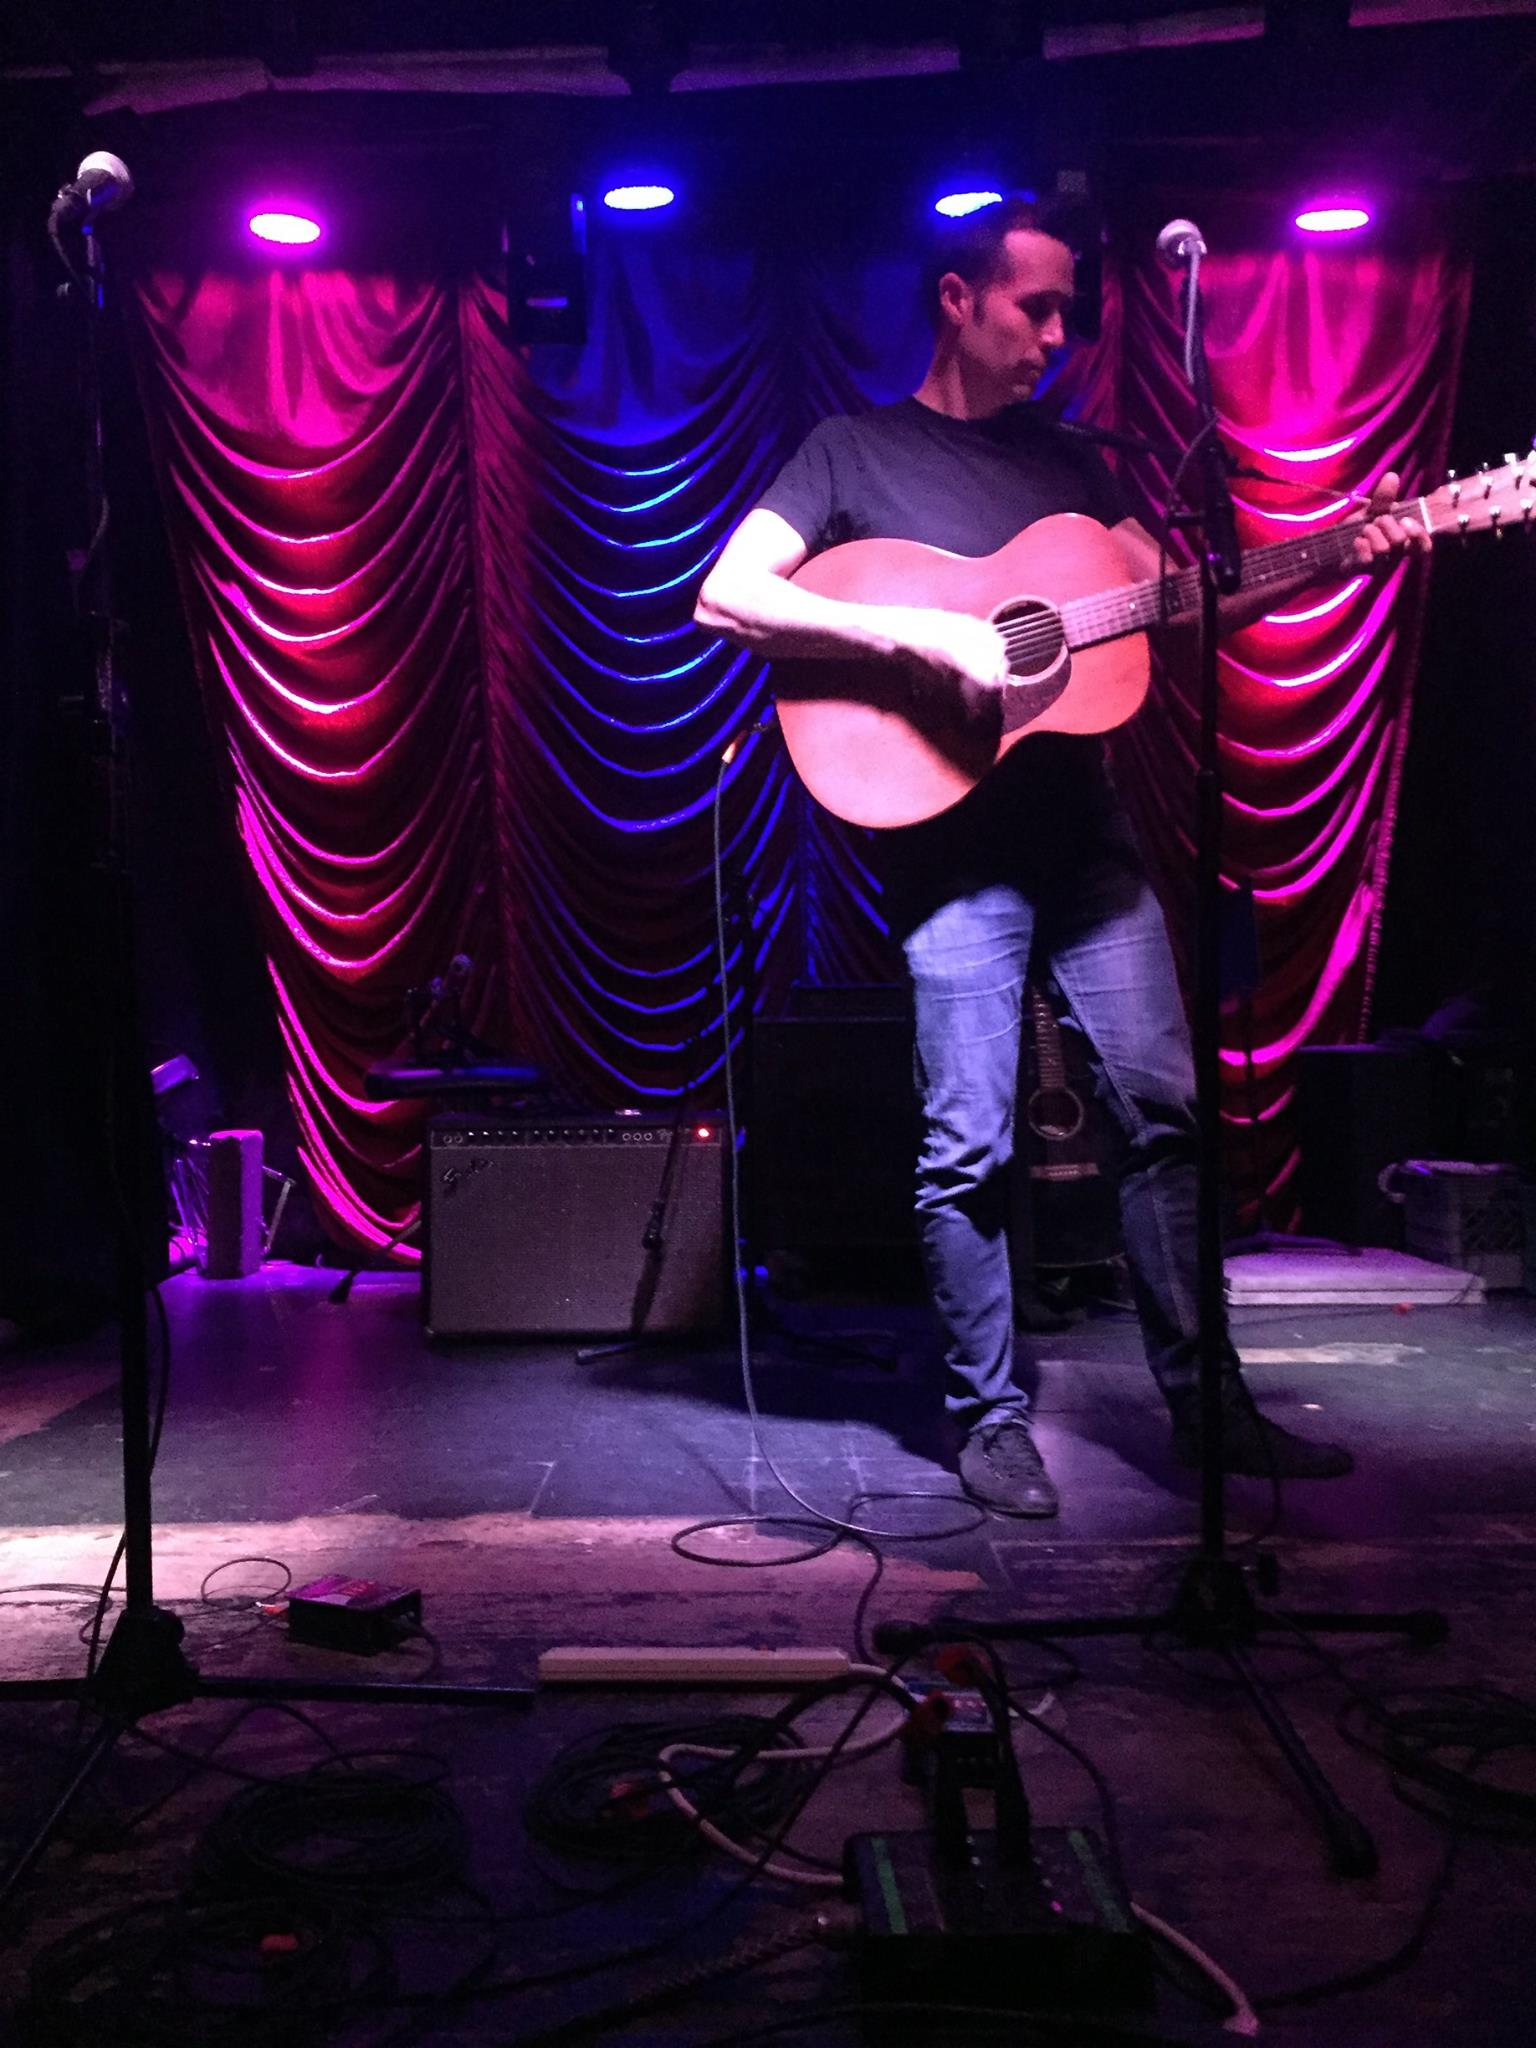 Francis Falls Live From Caffe Vivaldi-4/23/16